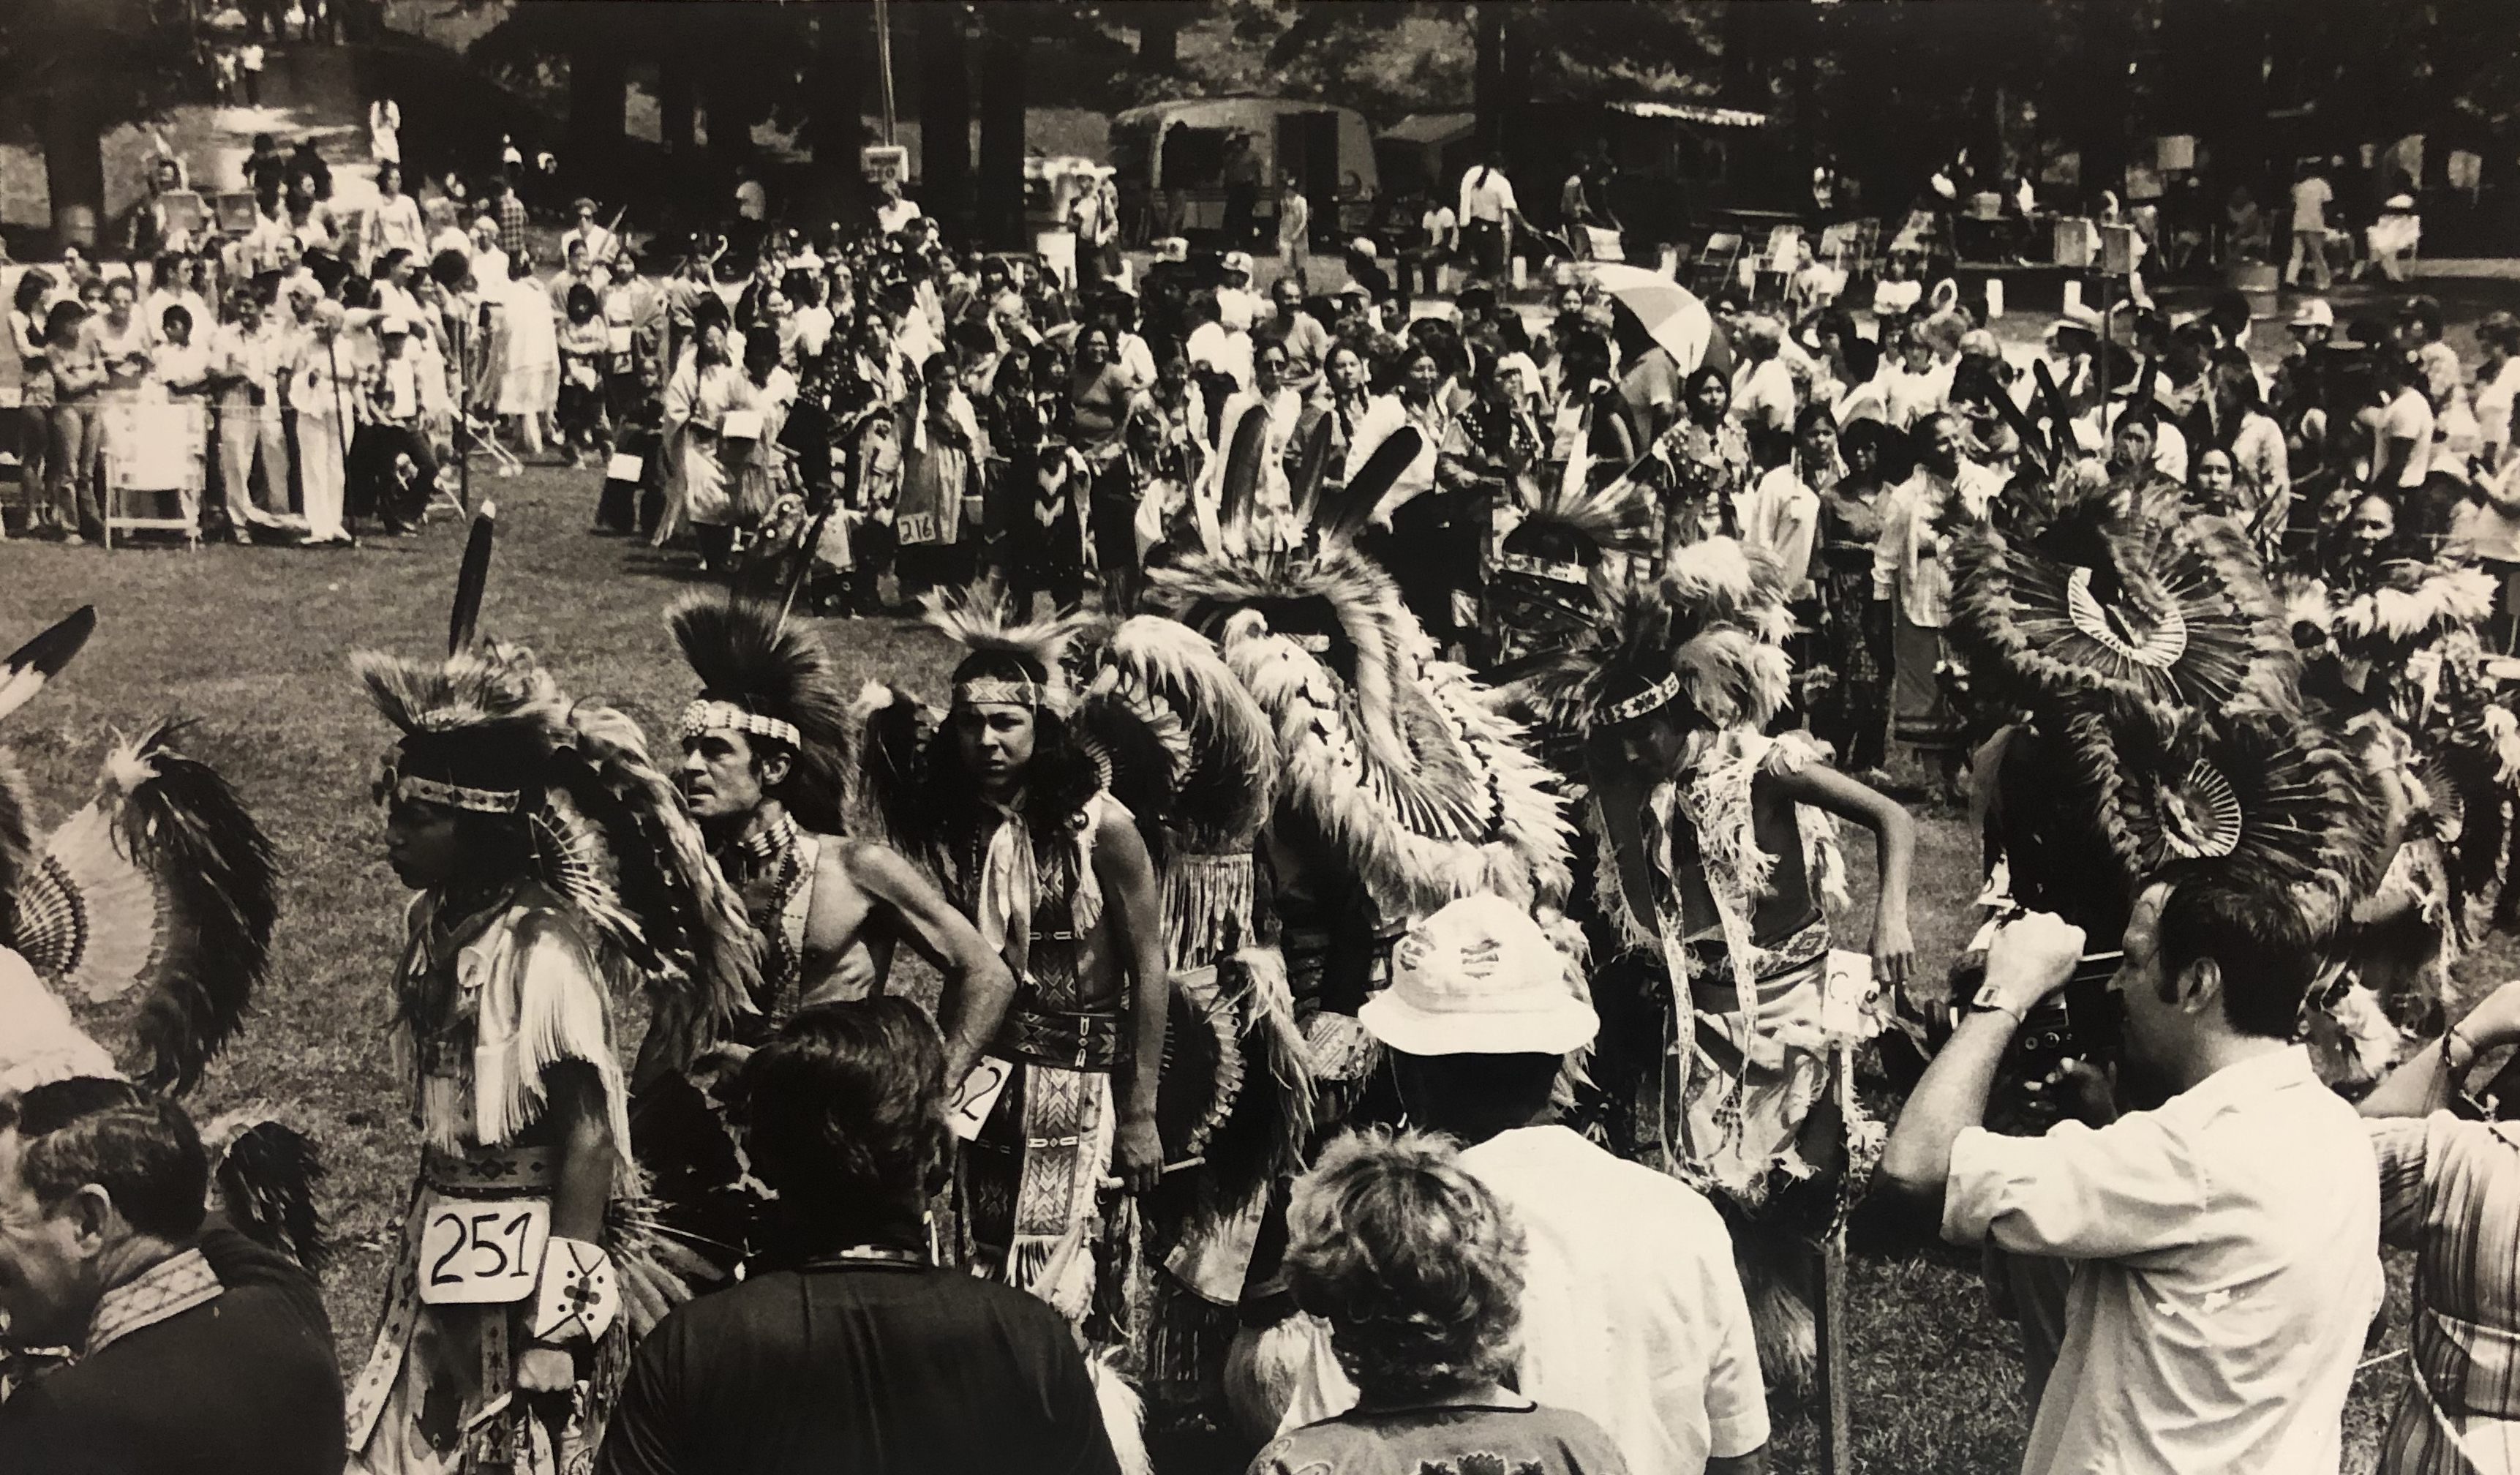 Grand River 'Champion of Champions' Pow Wow celebrates 40 years